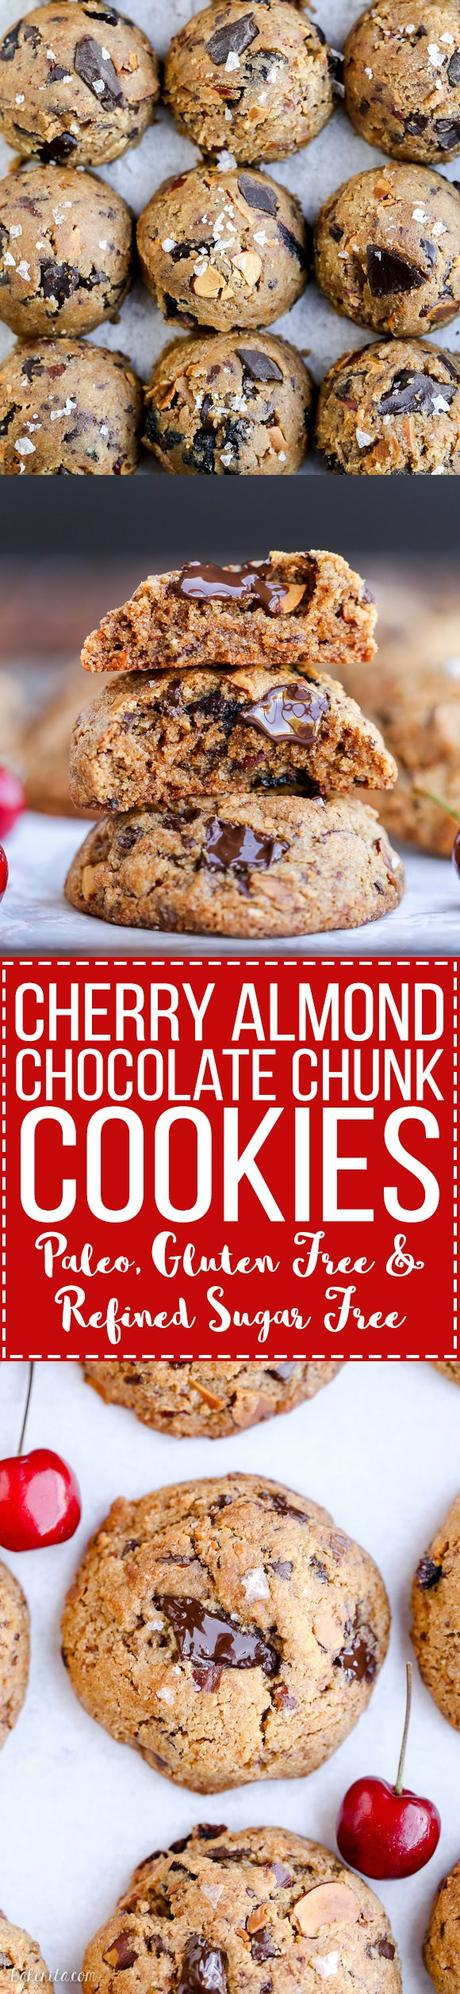 These Paleo Cherry Almond Chocolate Chunk Cookies are chewy, gooey, and absolutely delicious! These gluten-free and refined sugar-free cookies are loaded with toasted almonds, dried Bing cherries and dark chocolate chunks, sprinkled with flaky sea salt.